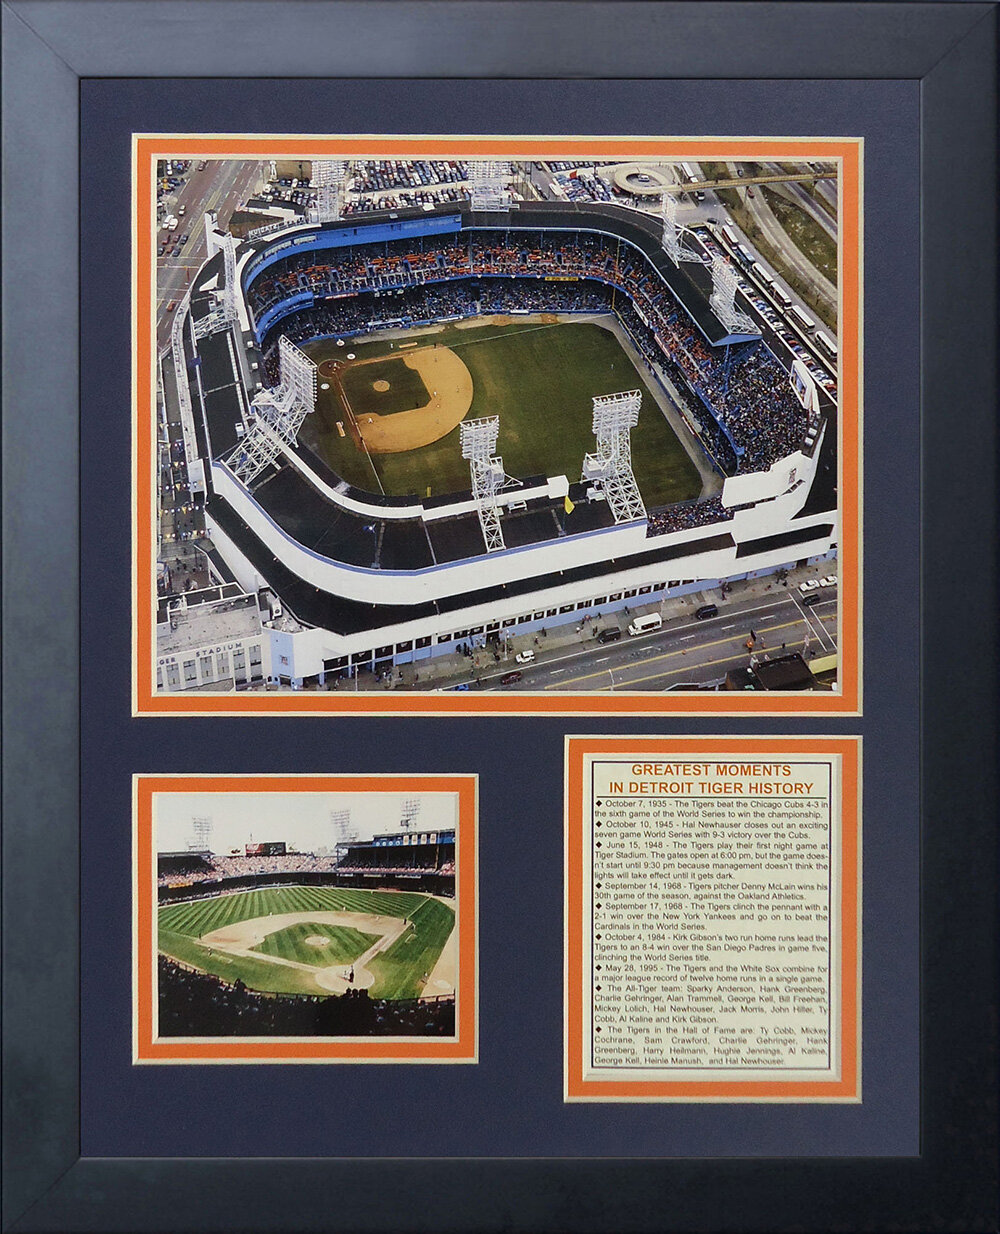 Legends Never Die Texas Rangers Ballpark at Arlington Framed Photo Collage 11 x 14-Inch